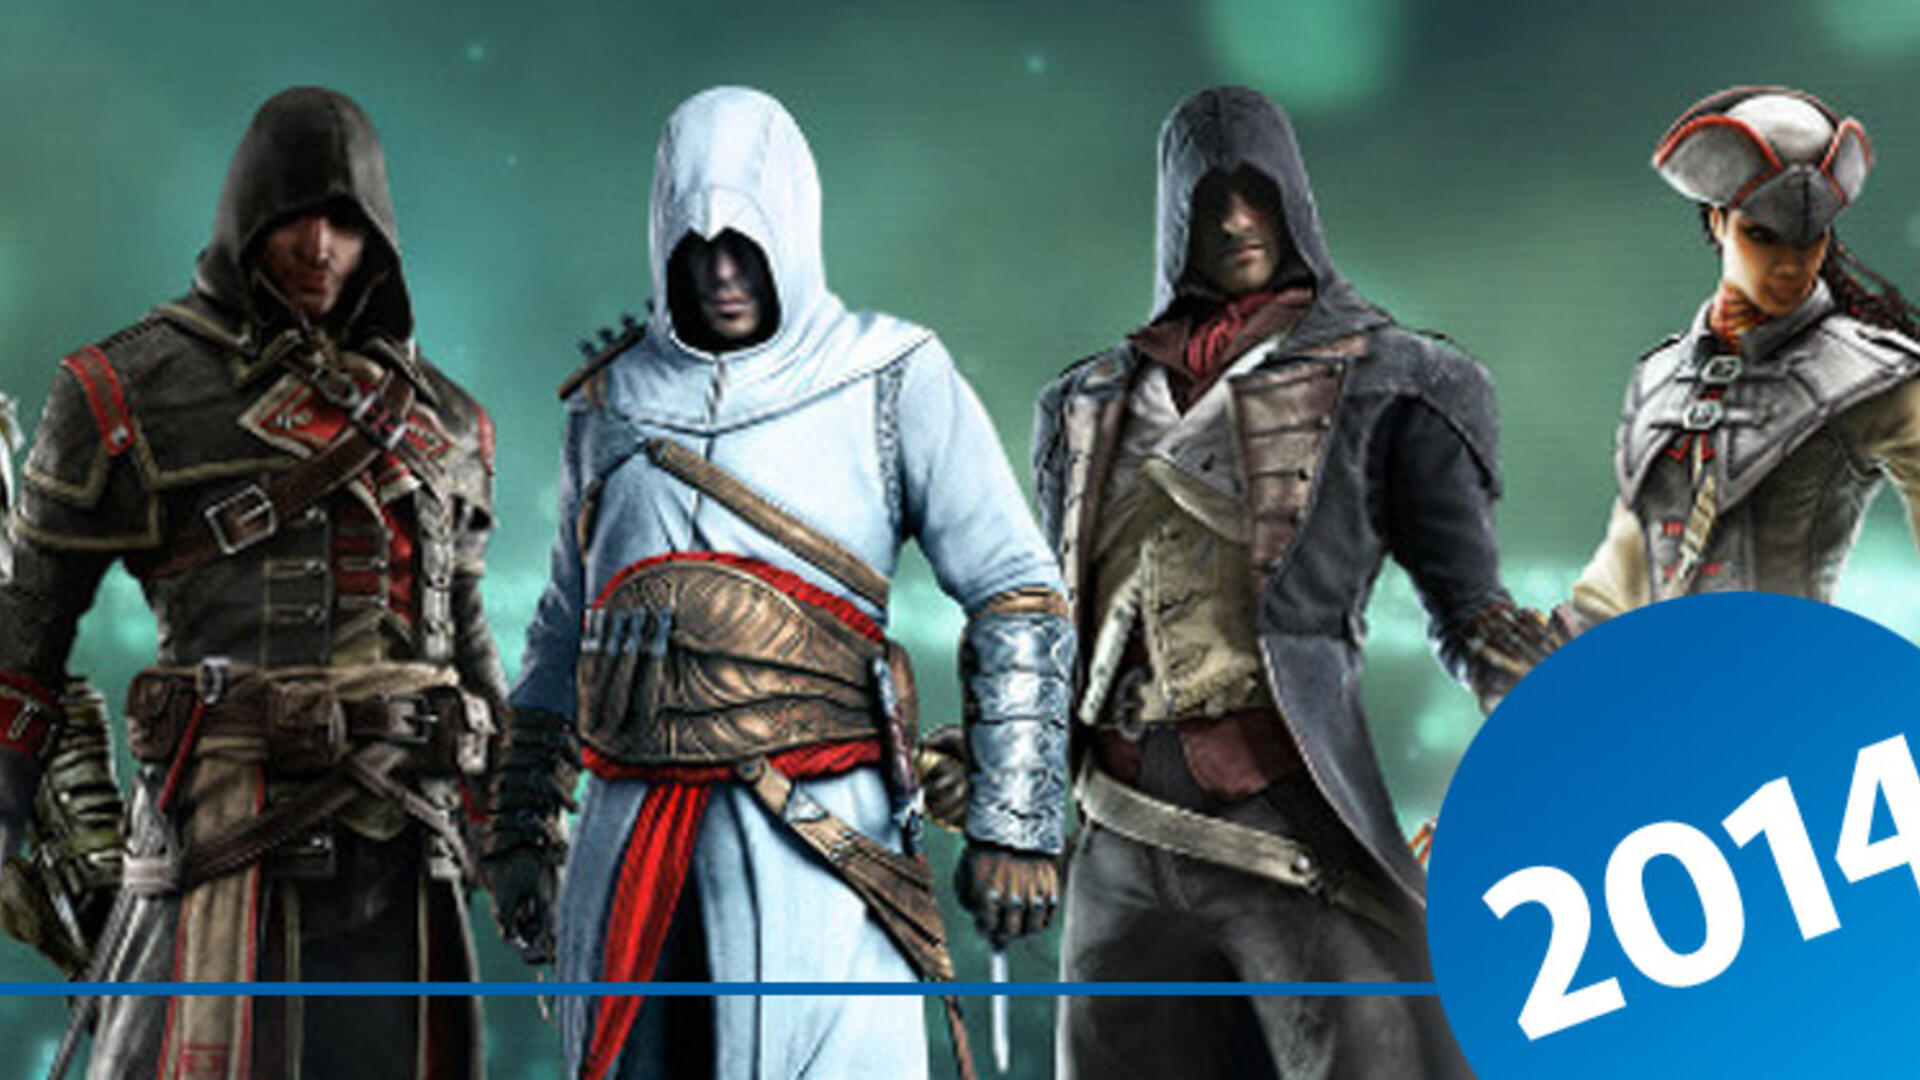 2014 Recap: The Year of Assassin's Creed